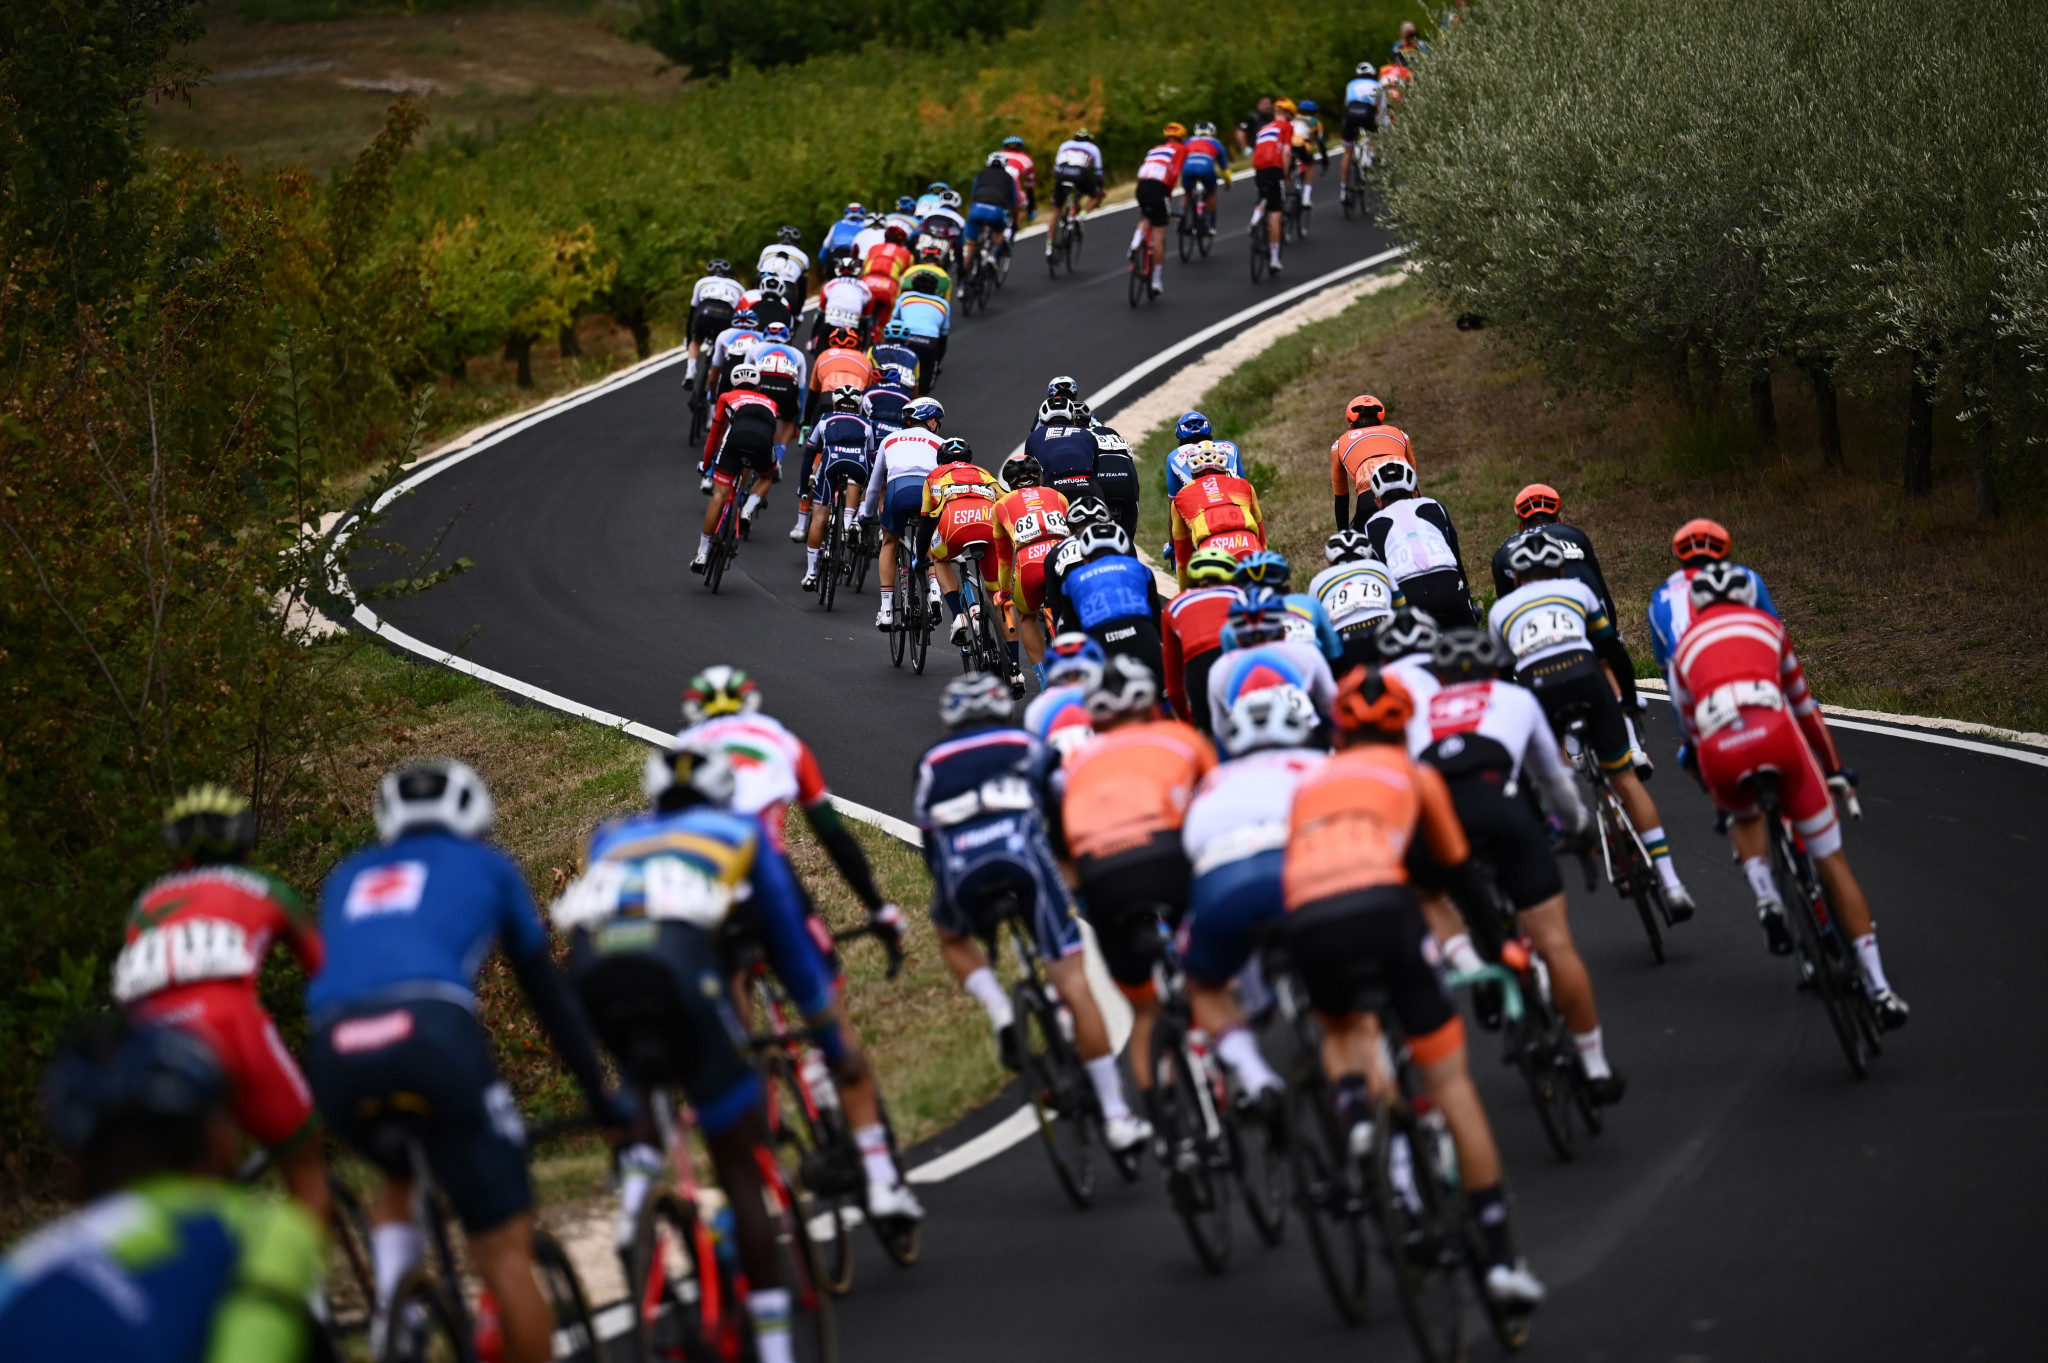 Imola in Italy stepping to host the UCI Road World Championships at late notice ©Getty Images